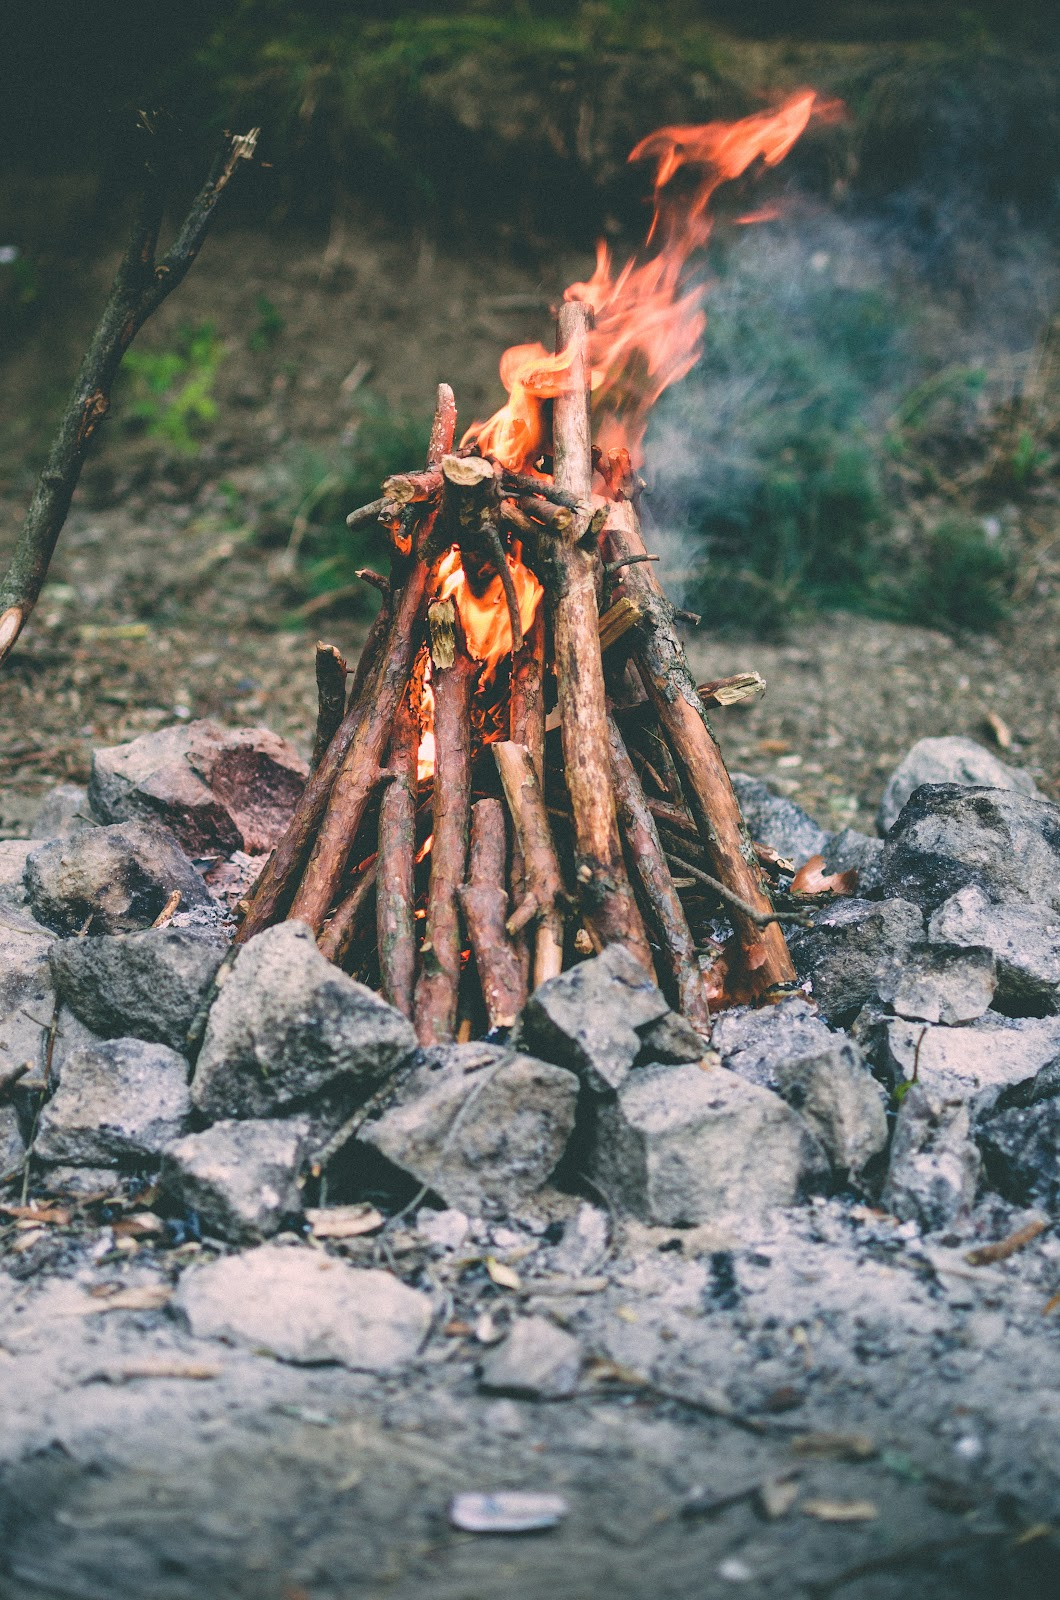 Know the Types of Campfires and How to Build One 1